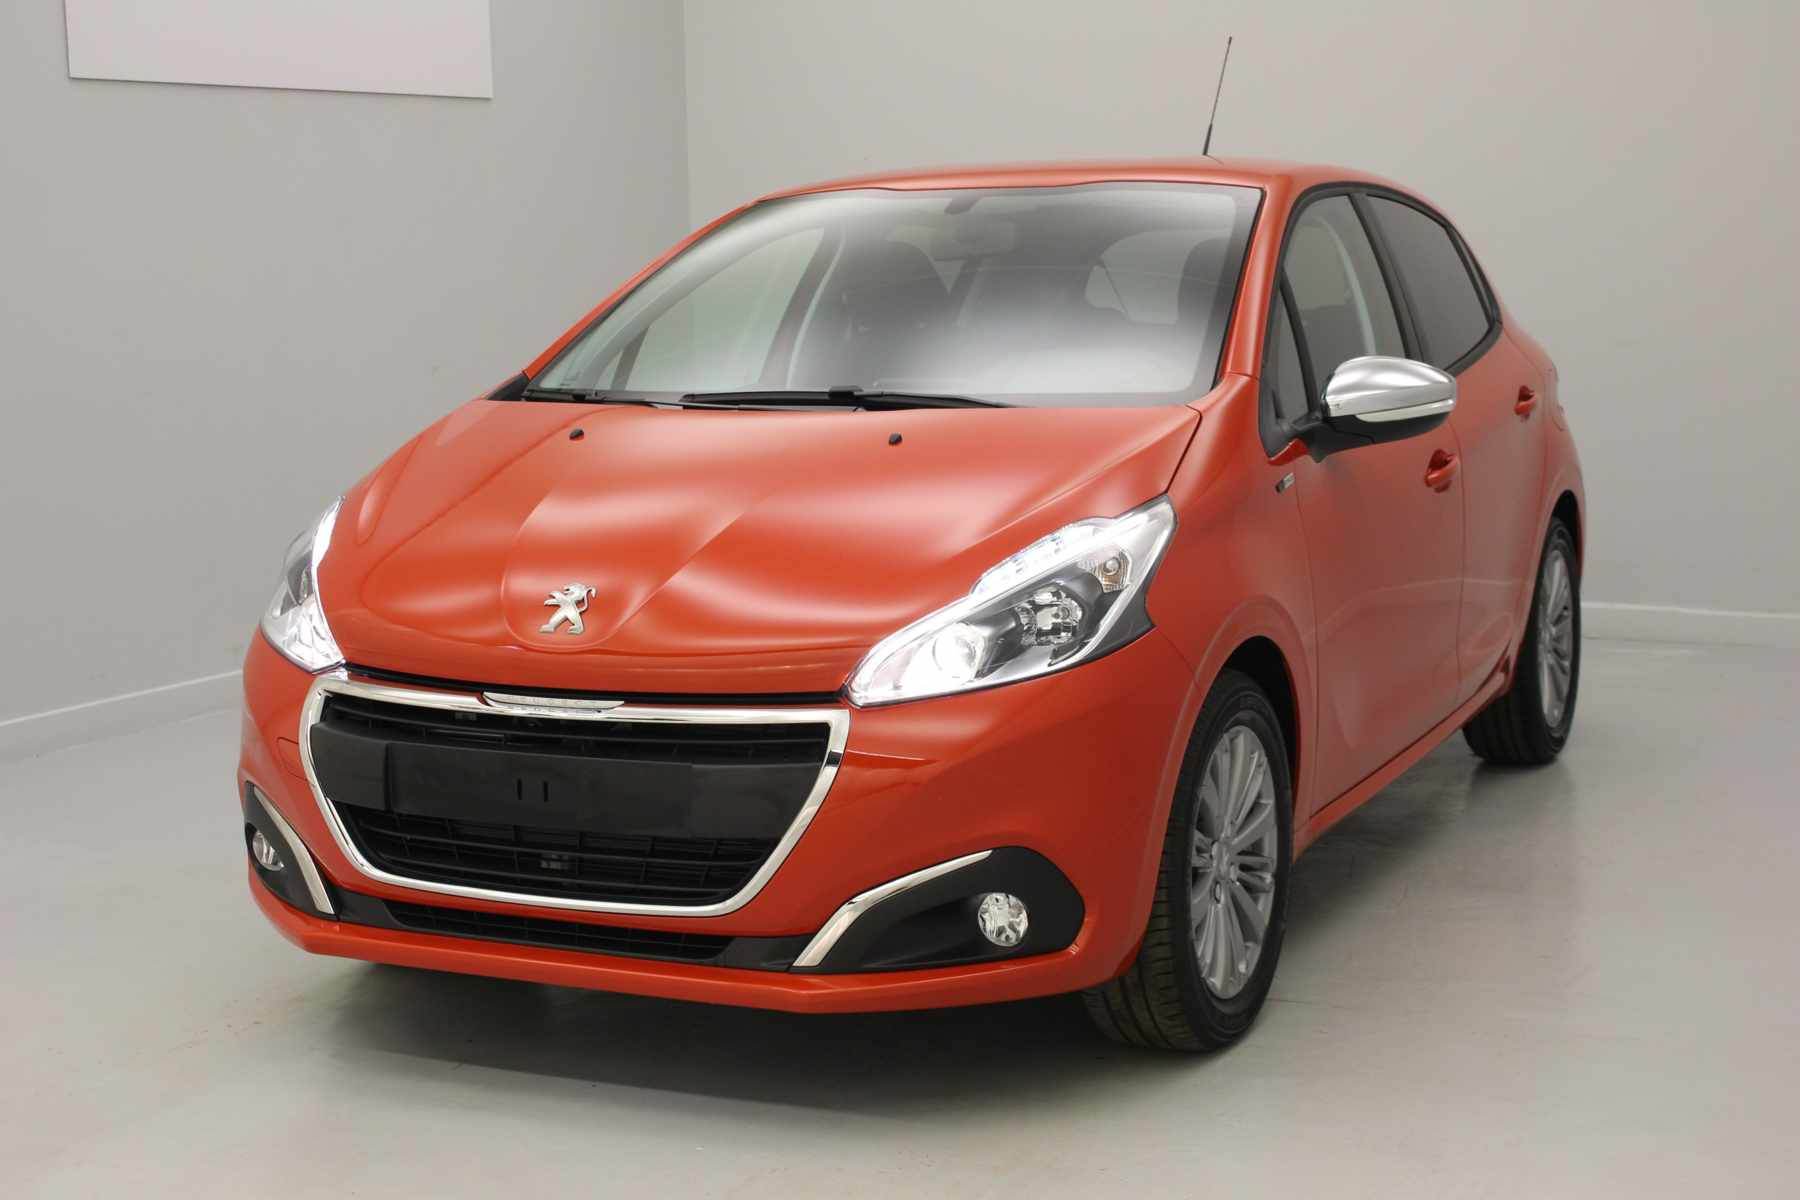 PEUGEOT 208 1.2 PureTech 82ch BVM5 Style 5 portes Orange Power+ Jantes alliage 16 + Roue de secours avec options